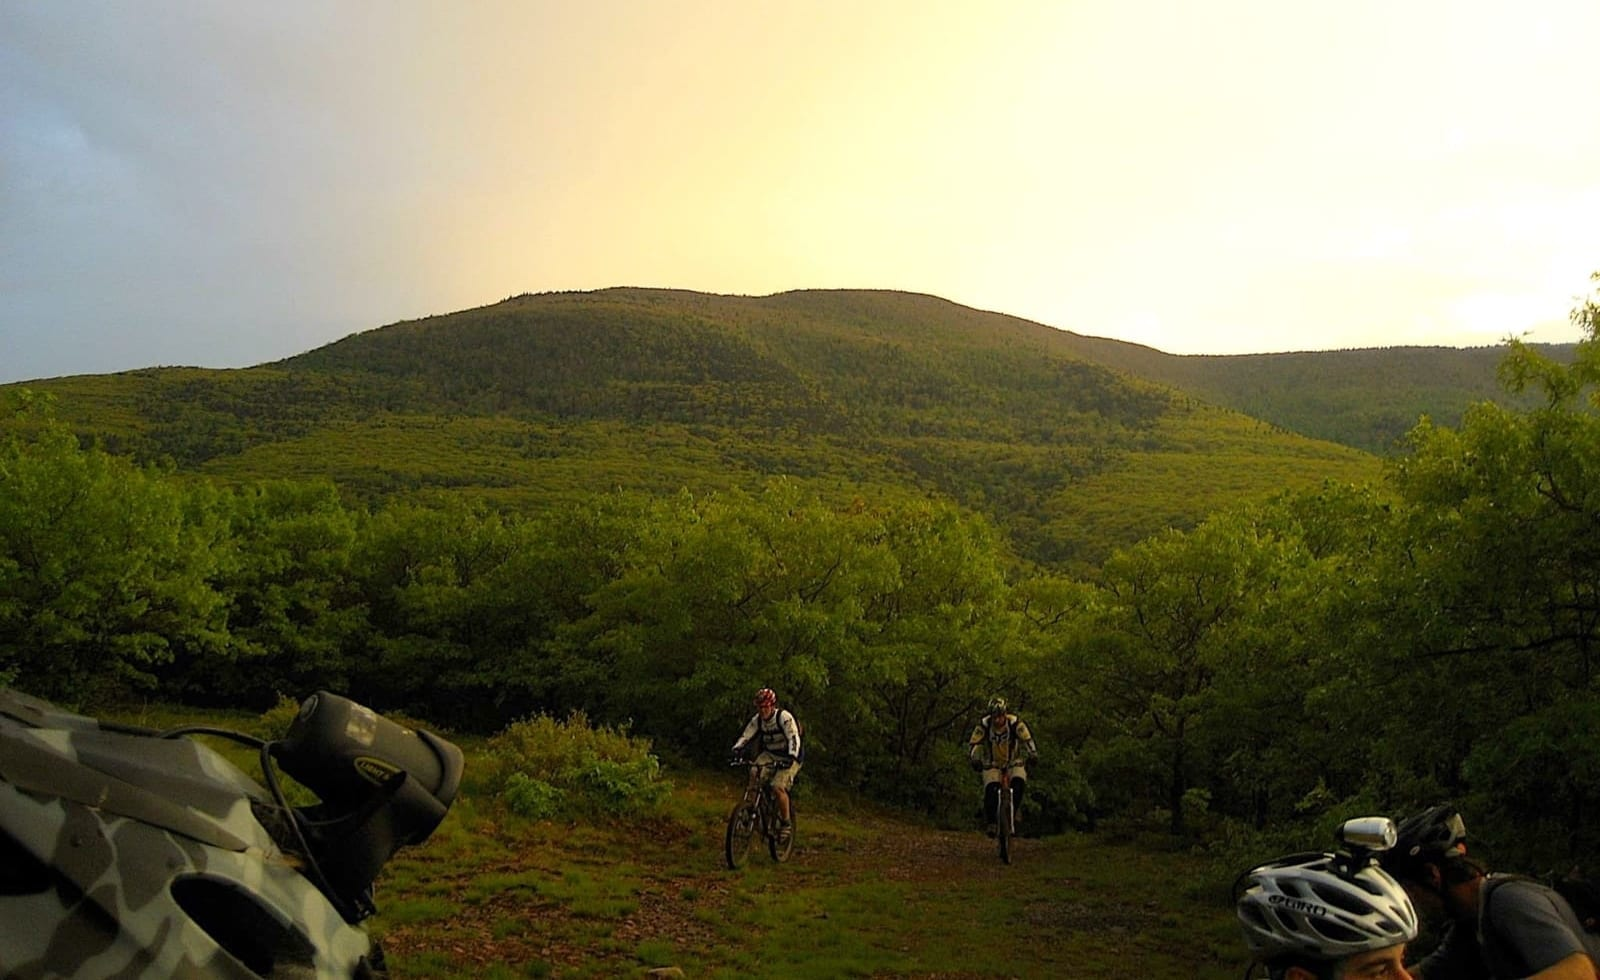 Mountain bikers in the Catskills.